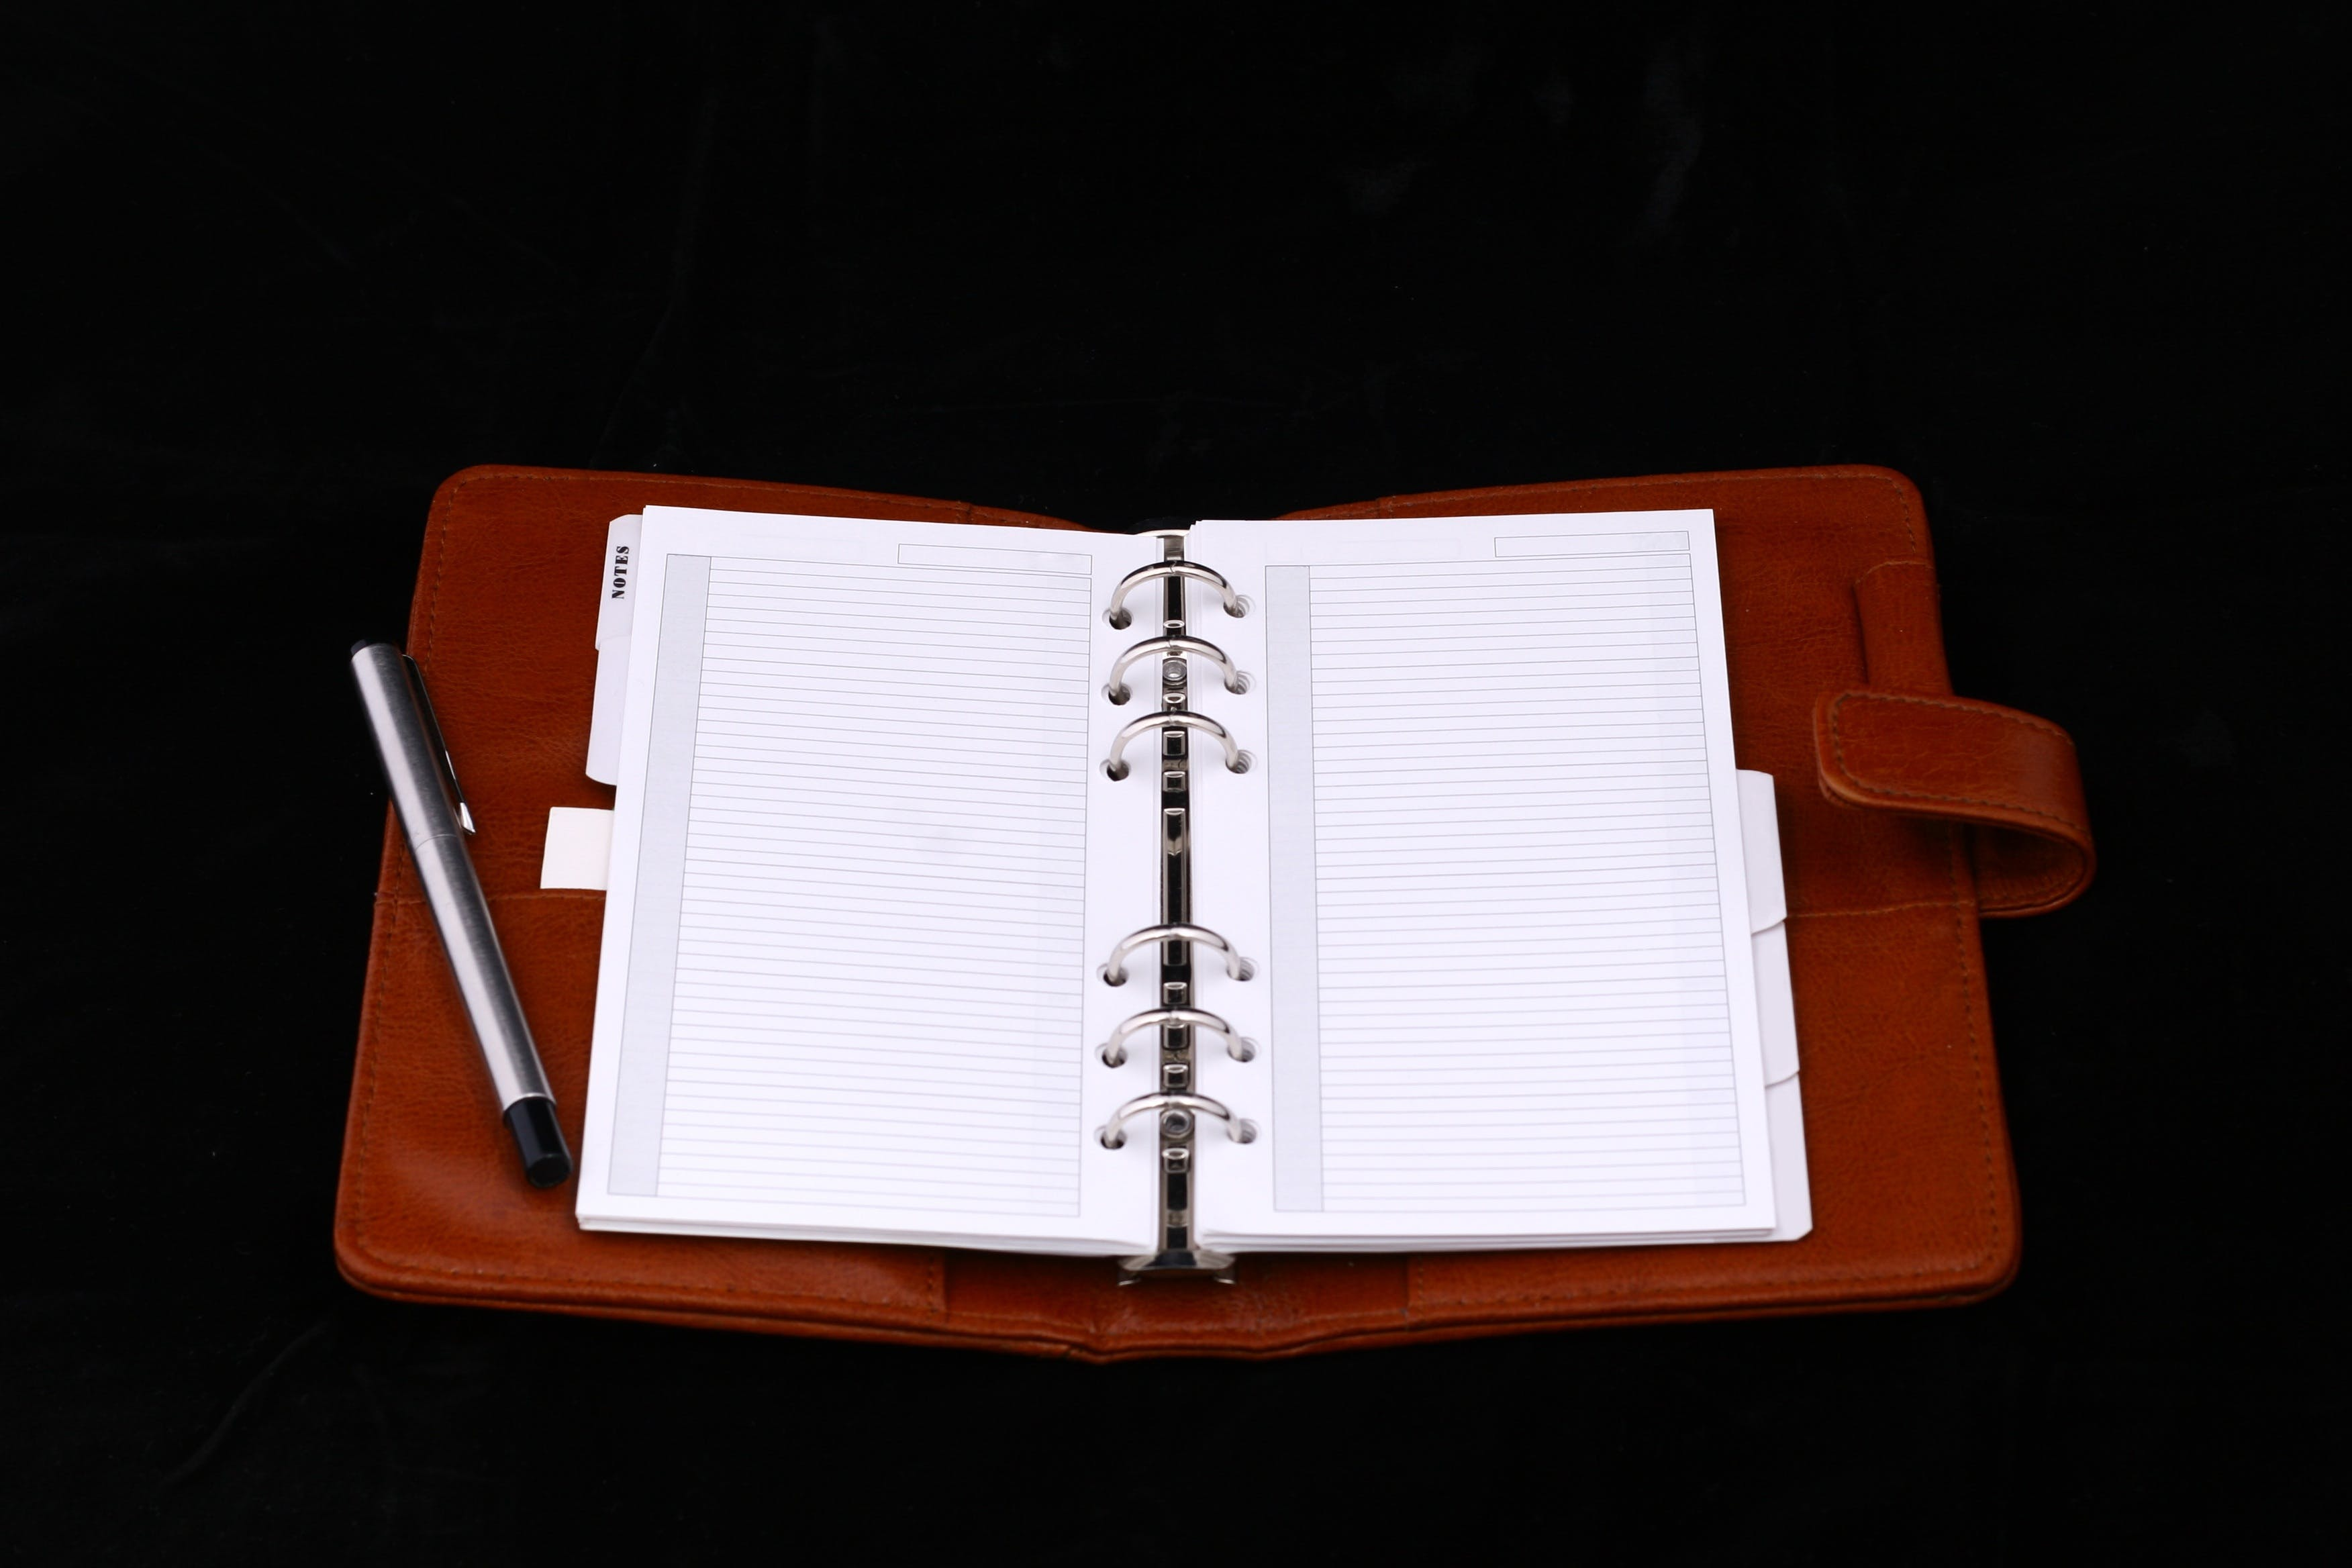 Opened Red Notebook